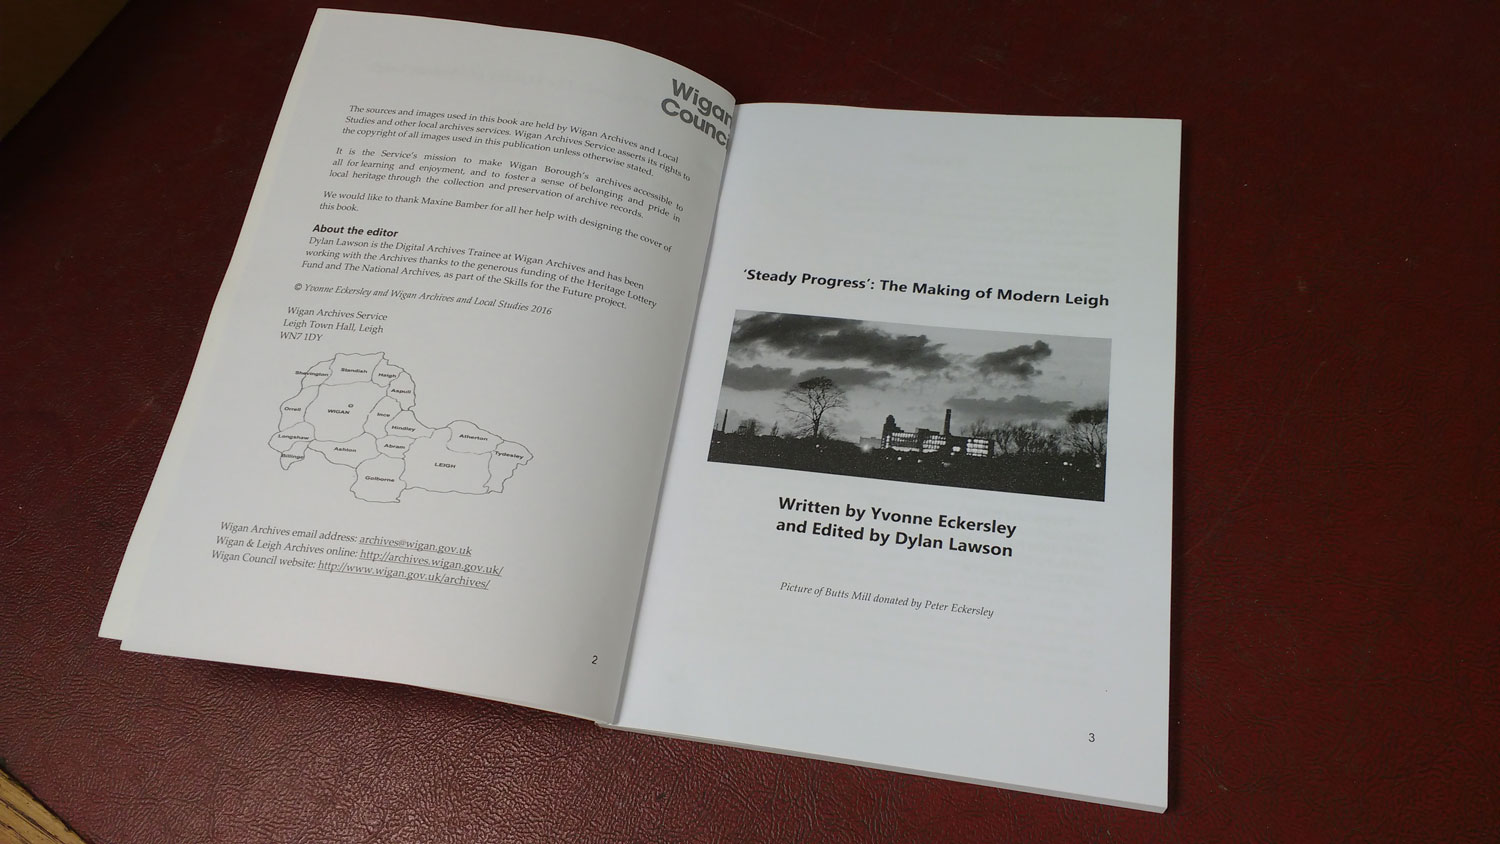 A photograph of the book 'Steady Progress: The Making of Modern Leigh' by local historian and Wigan Archives volunteer Yvonne Eckersley